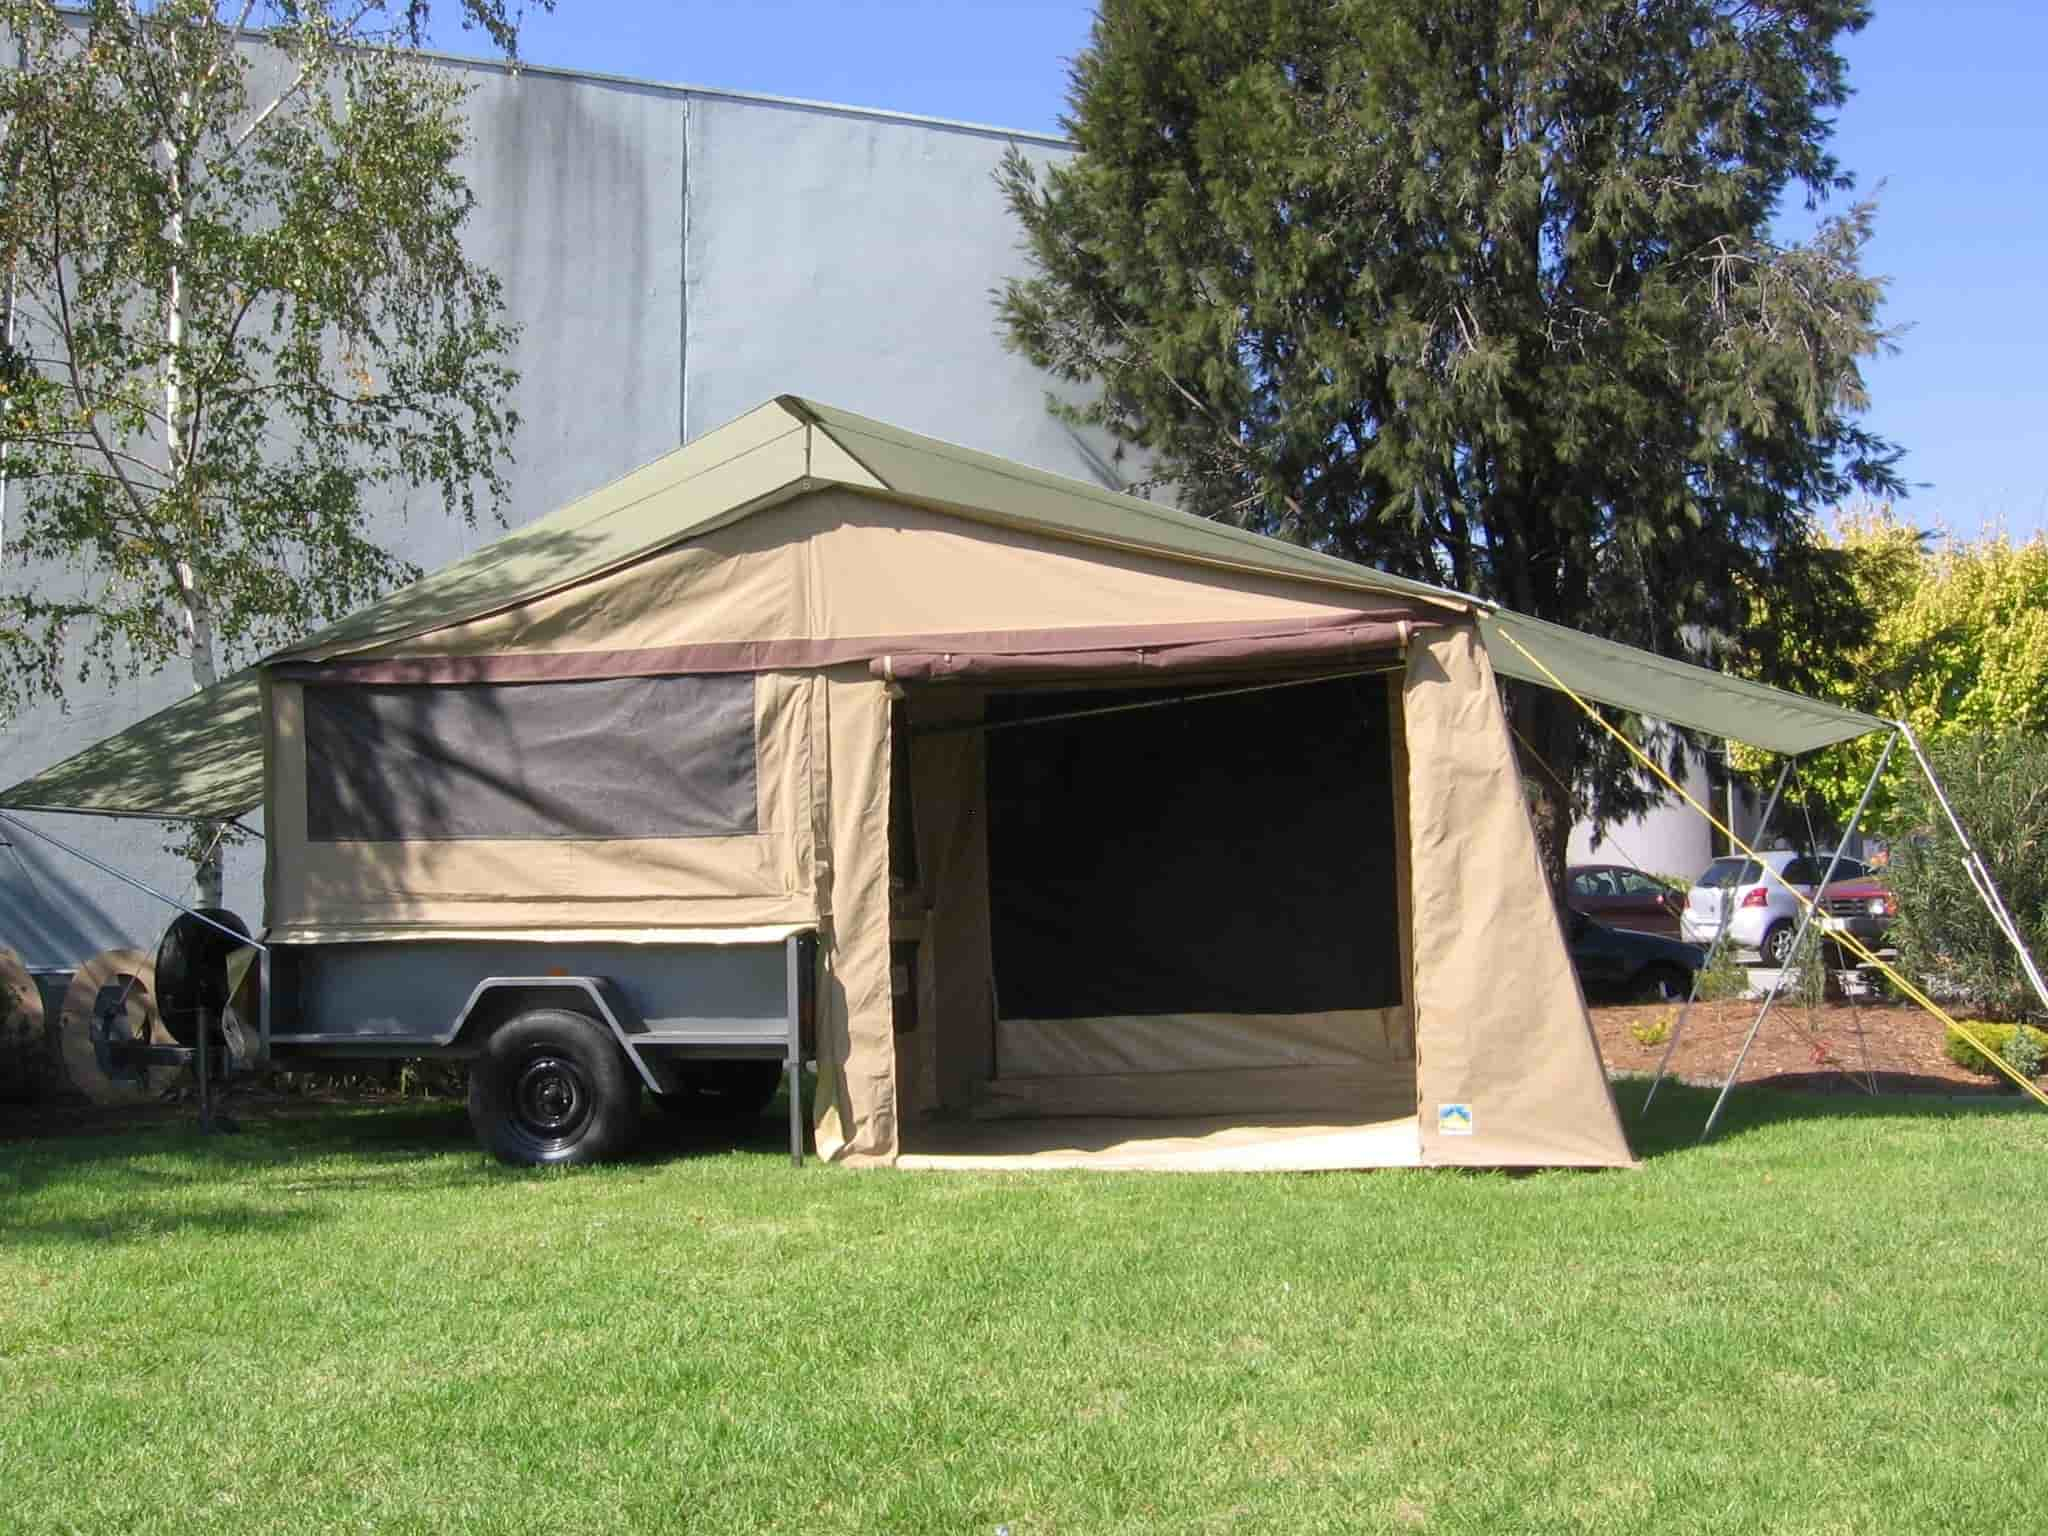 Cool GIVING Five Star Hotels A Run For Their Money, These Tents For Rent Are Breaking New Ground  Nightfallcomau St Jeromes  The Hotel Offers Luxury Camping